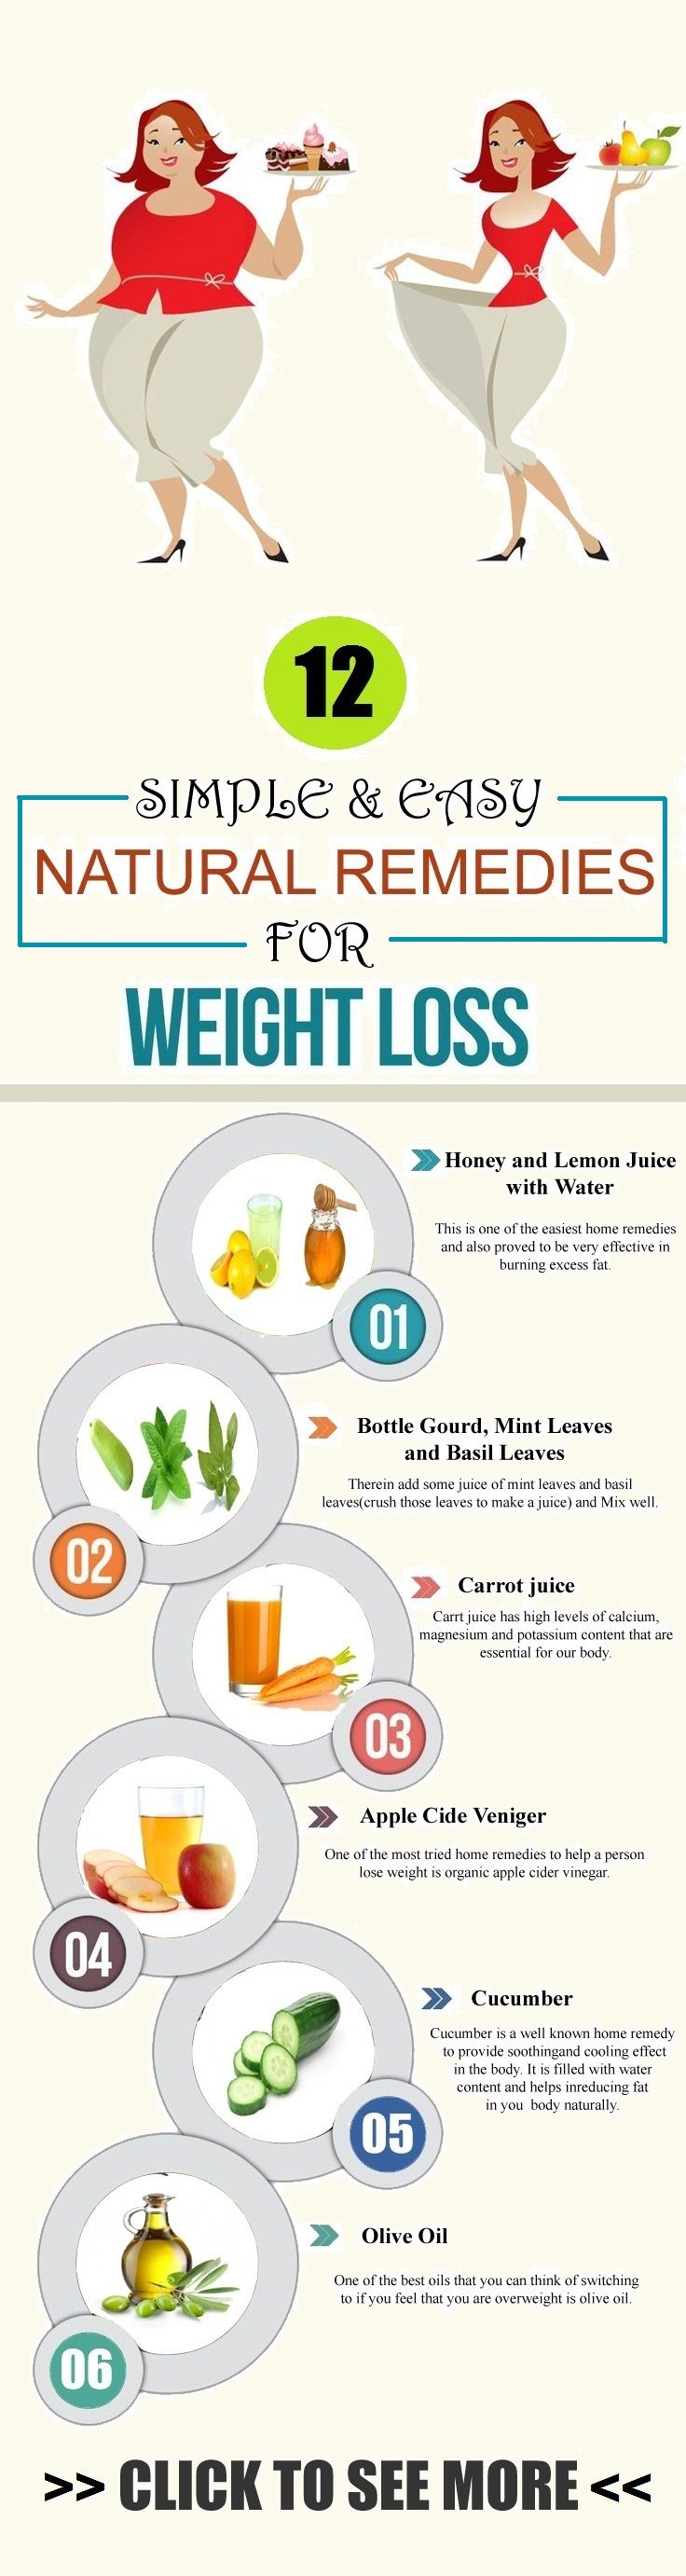 Diets to lose weight uk image 9